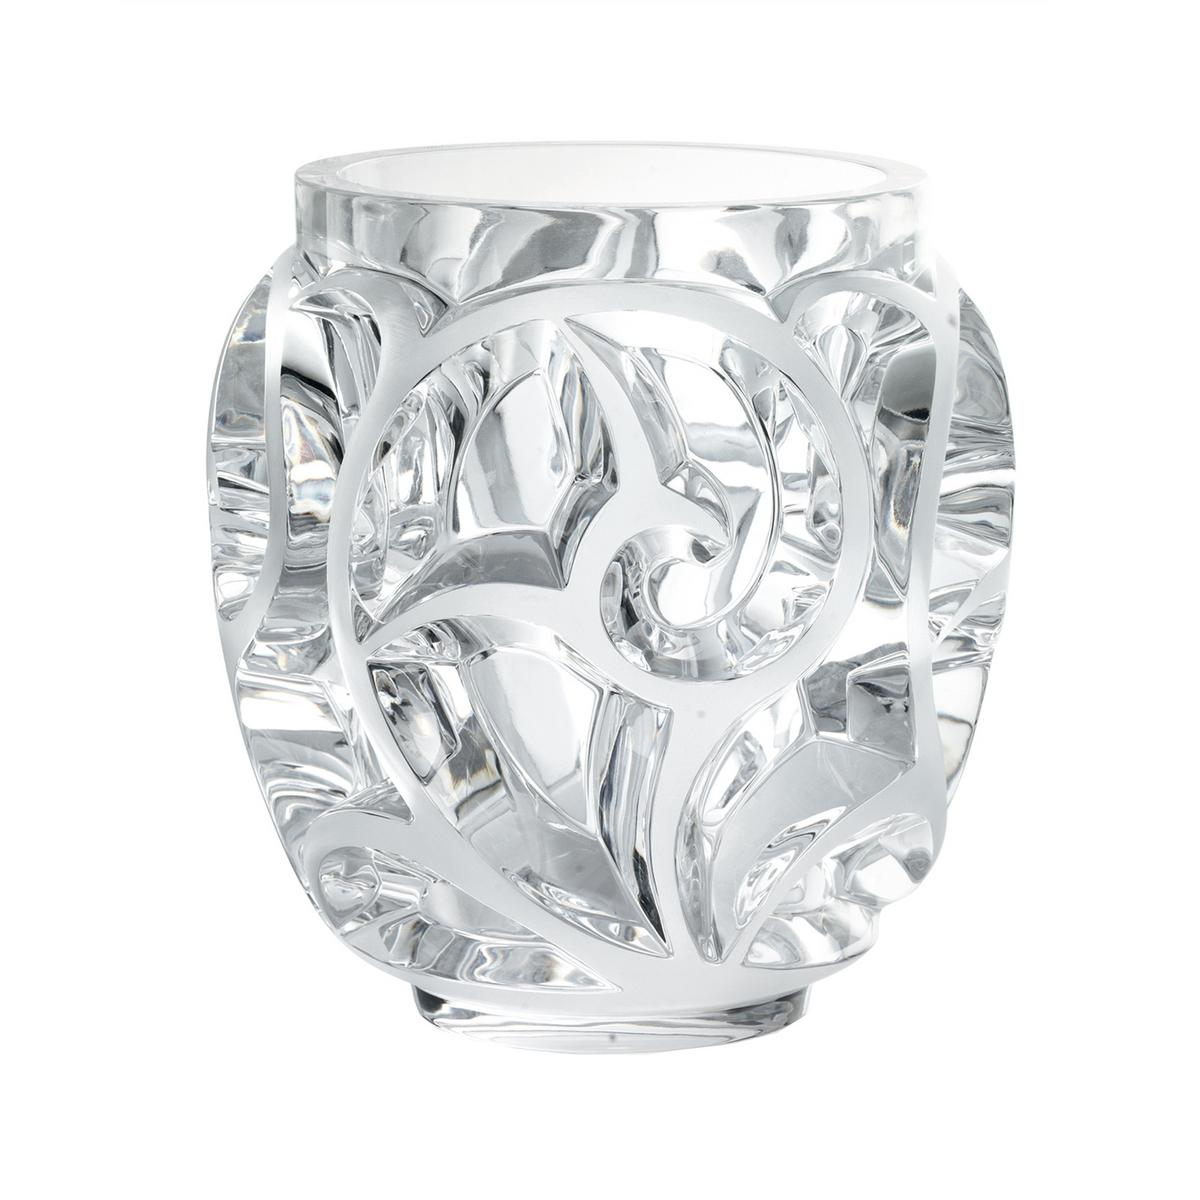 Lalique tourbillons vases for Lalique vase